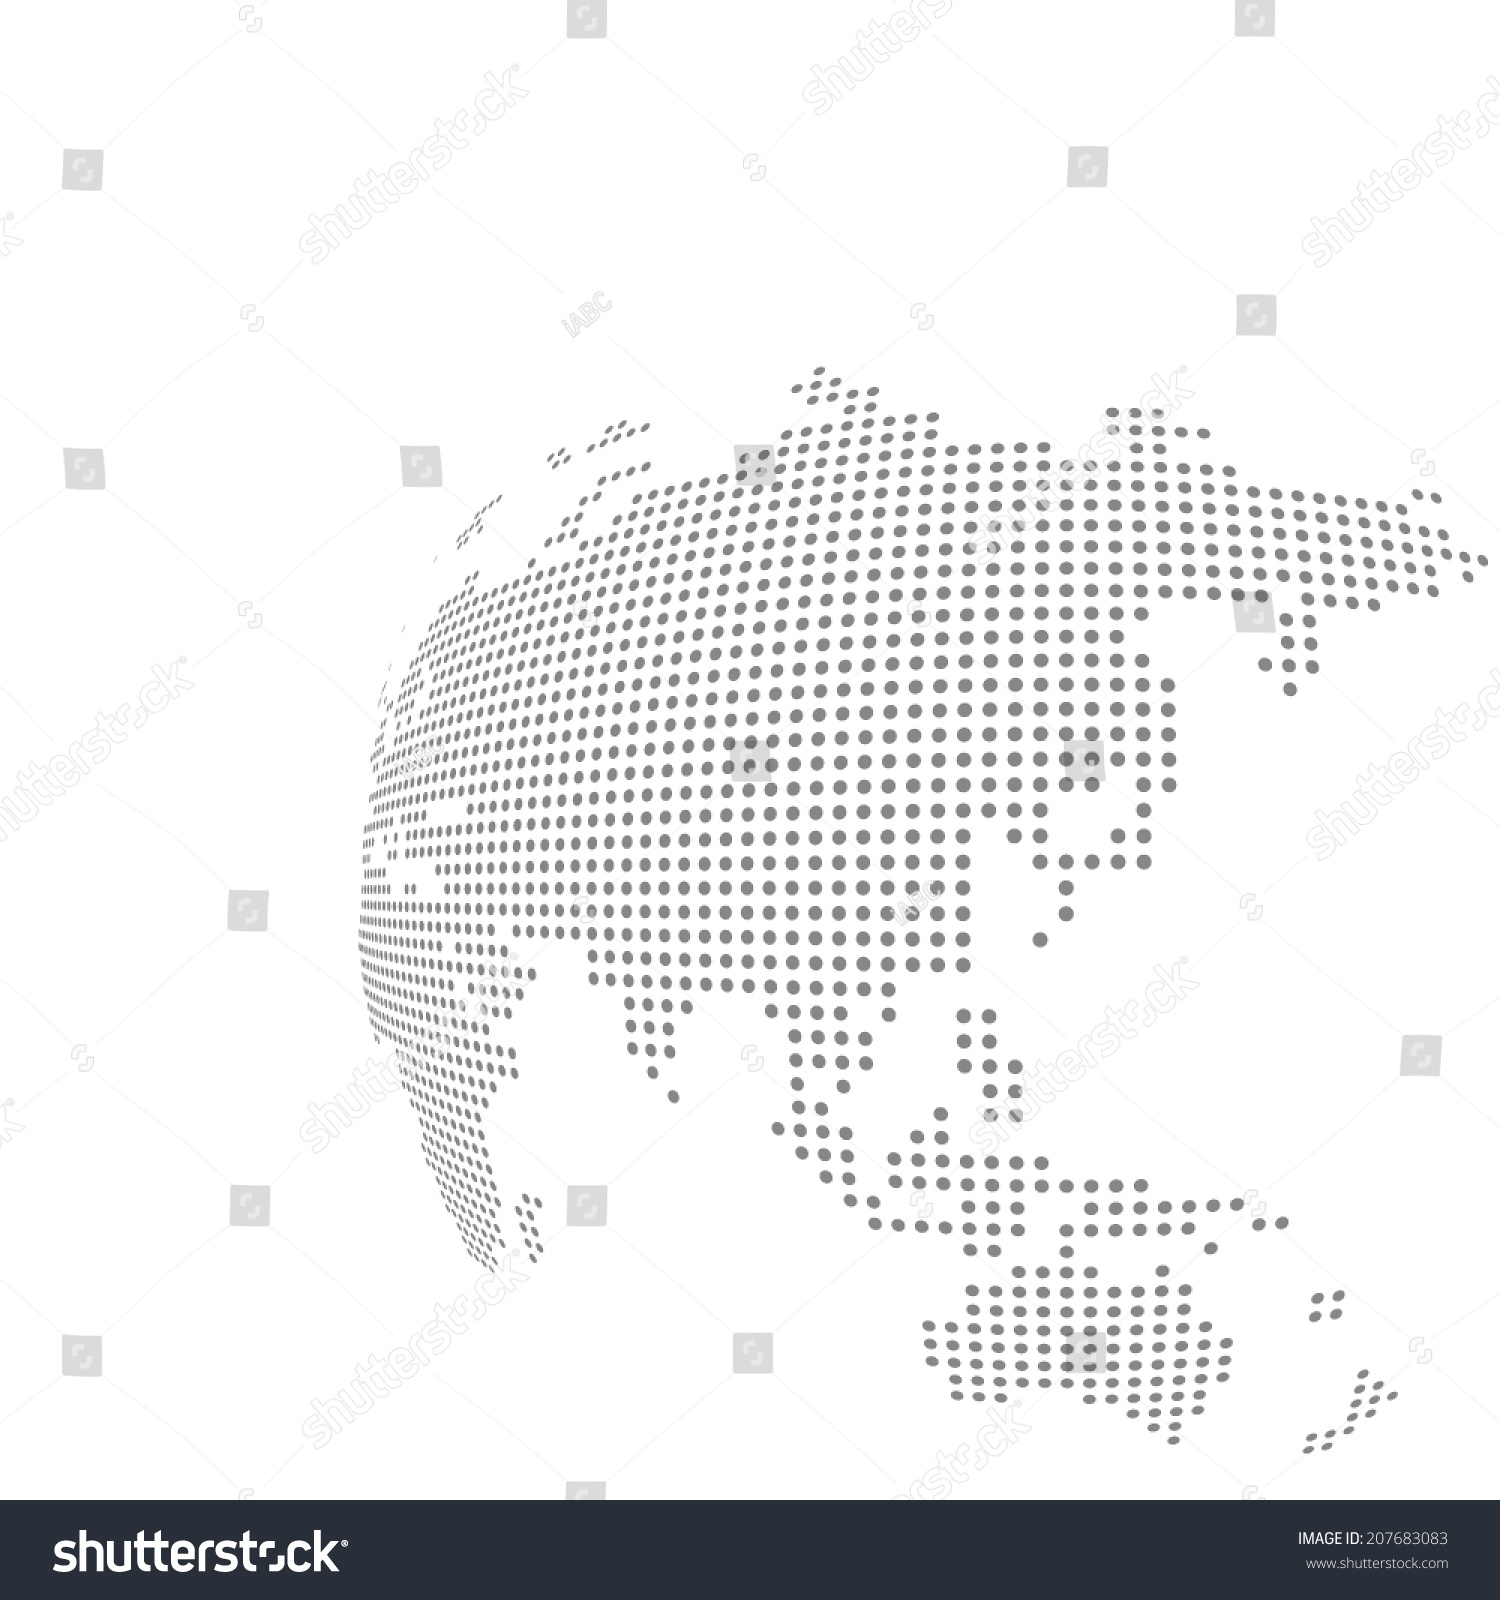 Dotted Vector Globe Map Stock Vector (Royalty Free) 207683083 ...